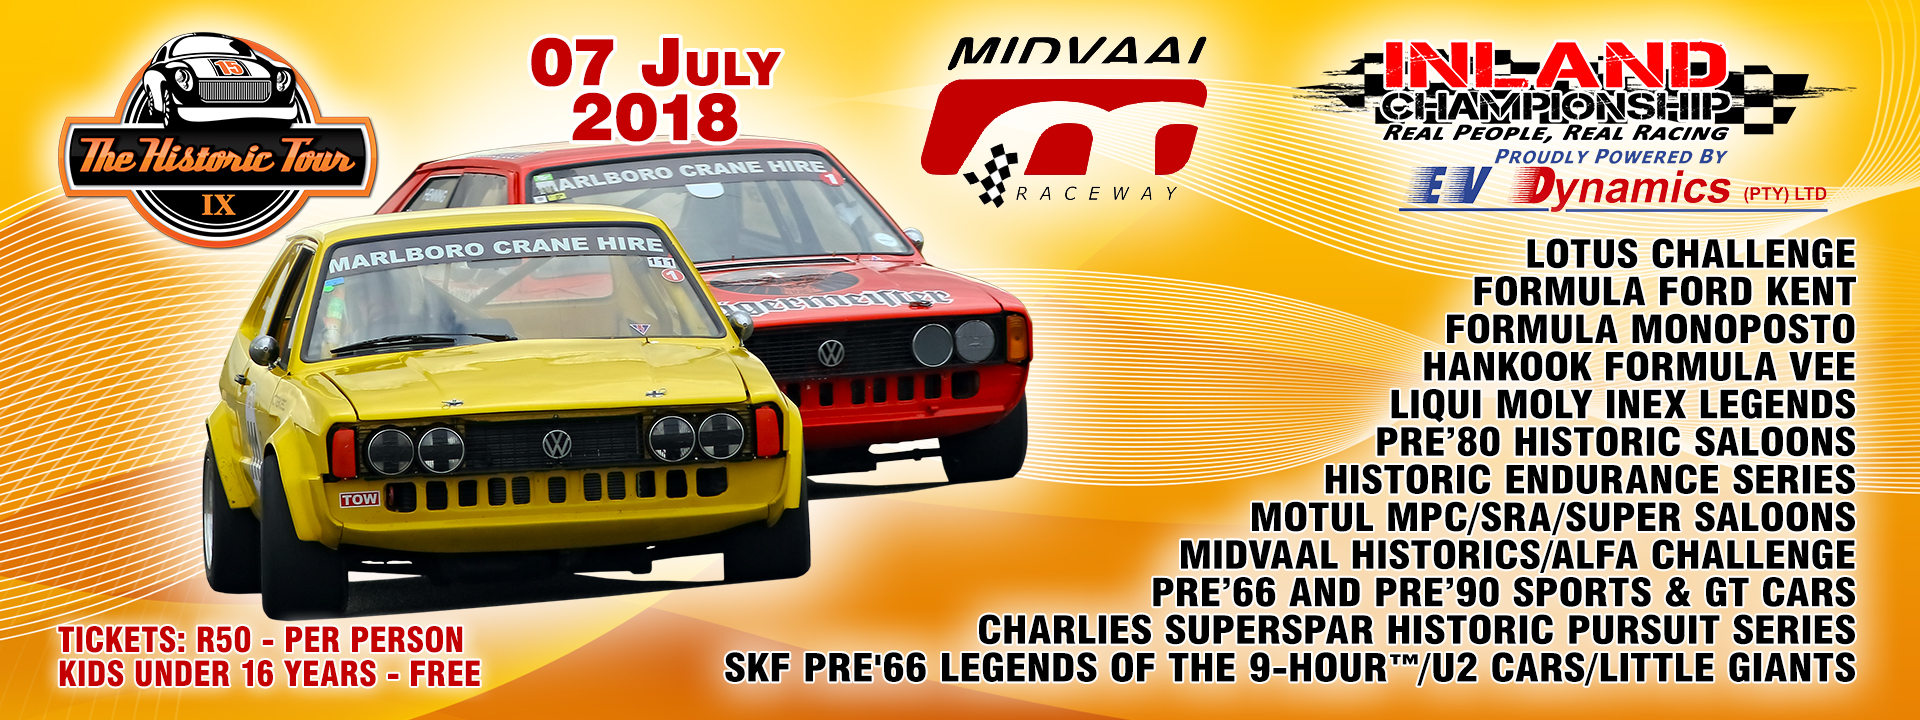 Entries open for Round 4 of Historic Tour at Midvaal on 7 July 2018